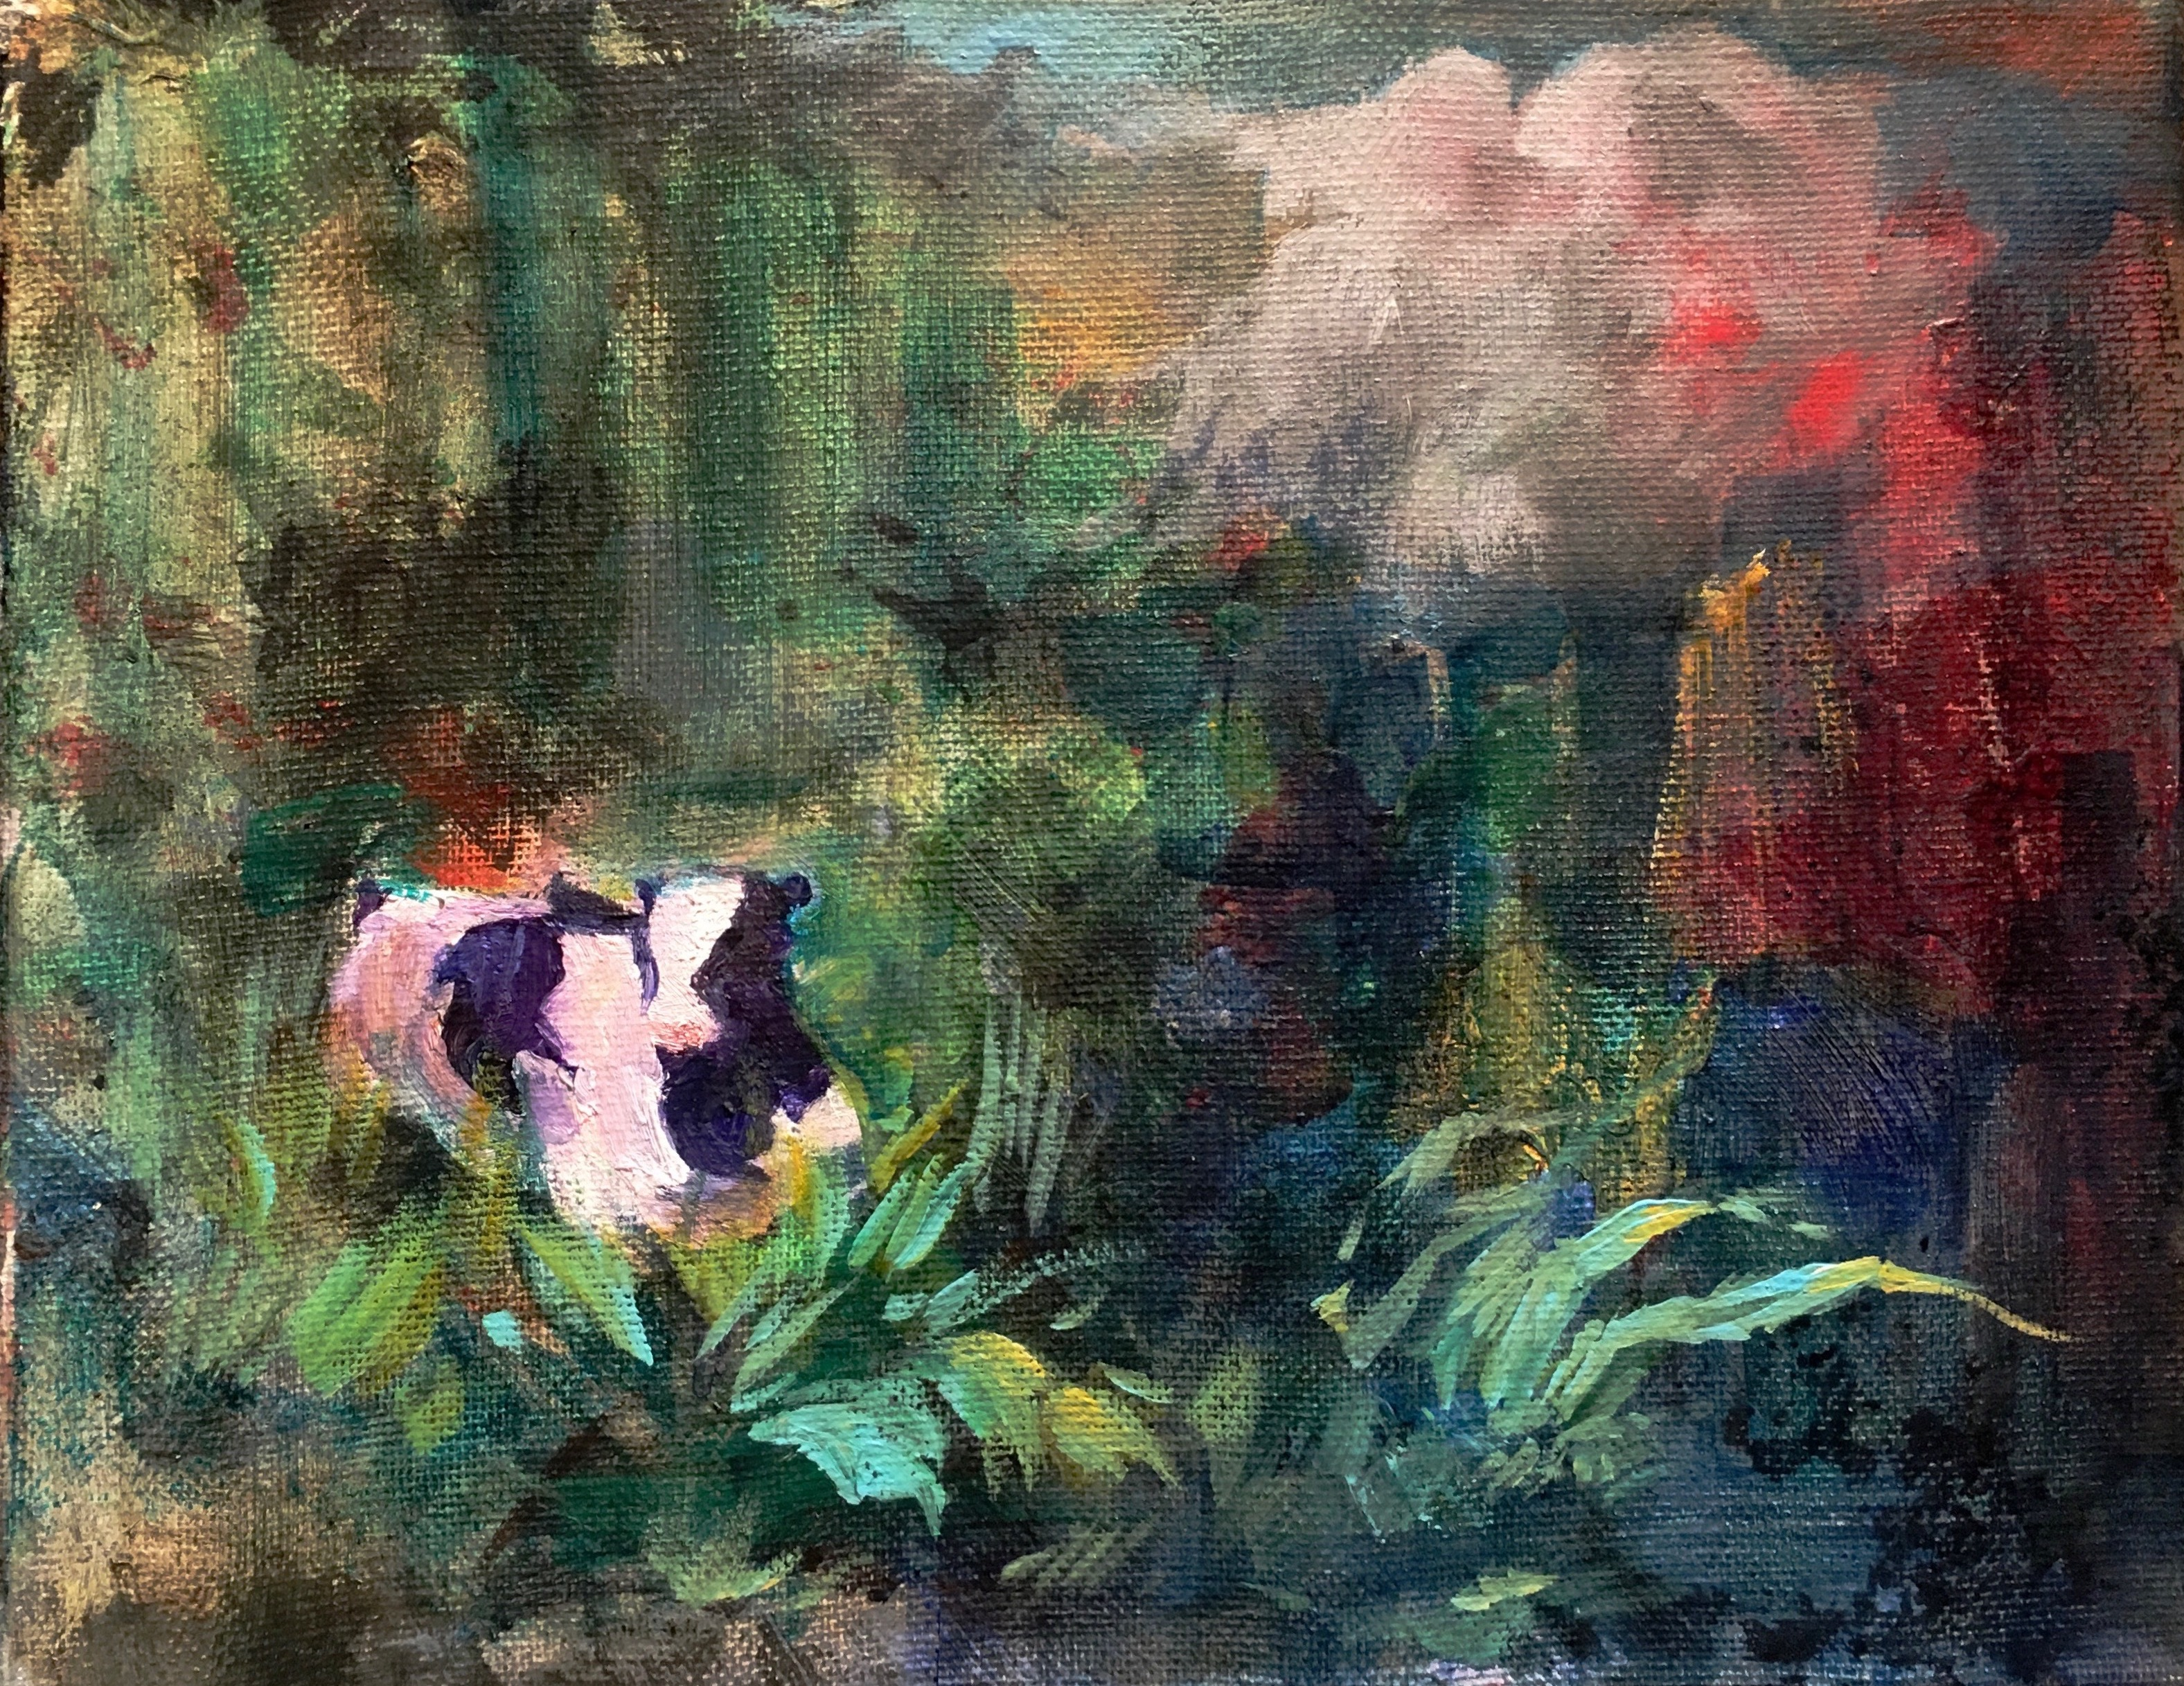 Cow in Thicket